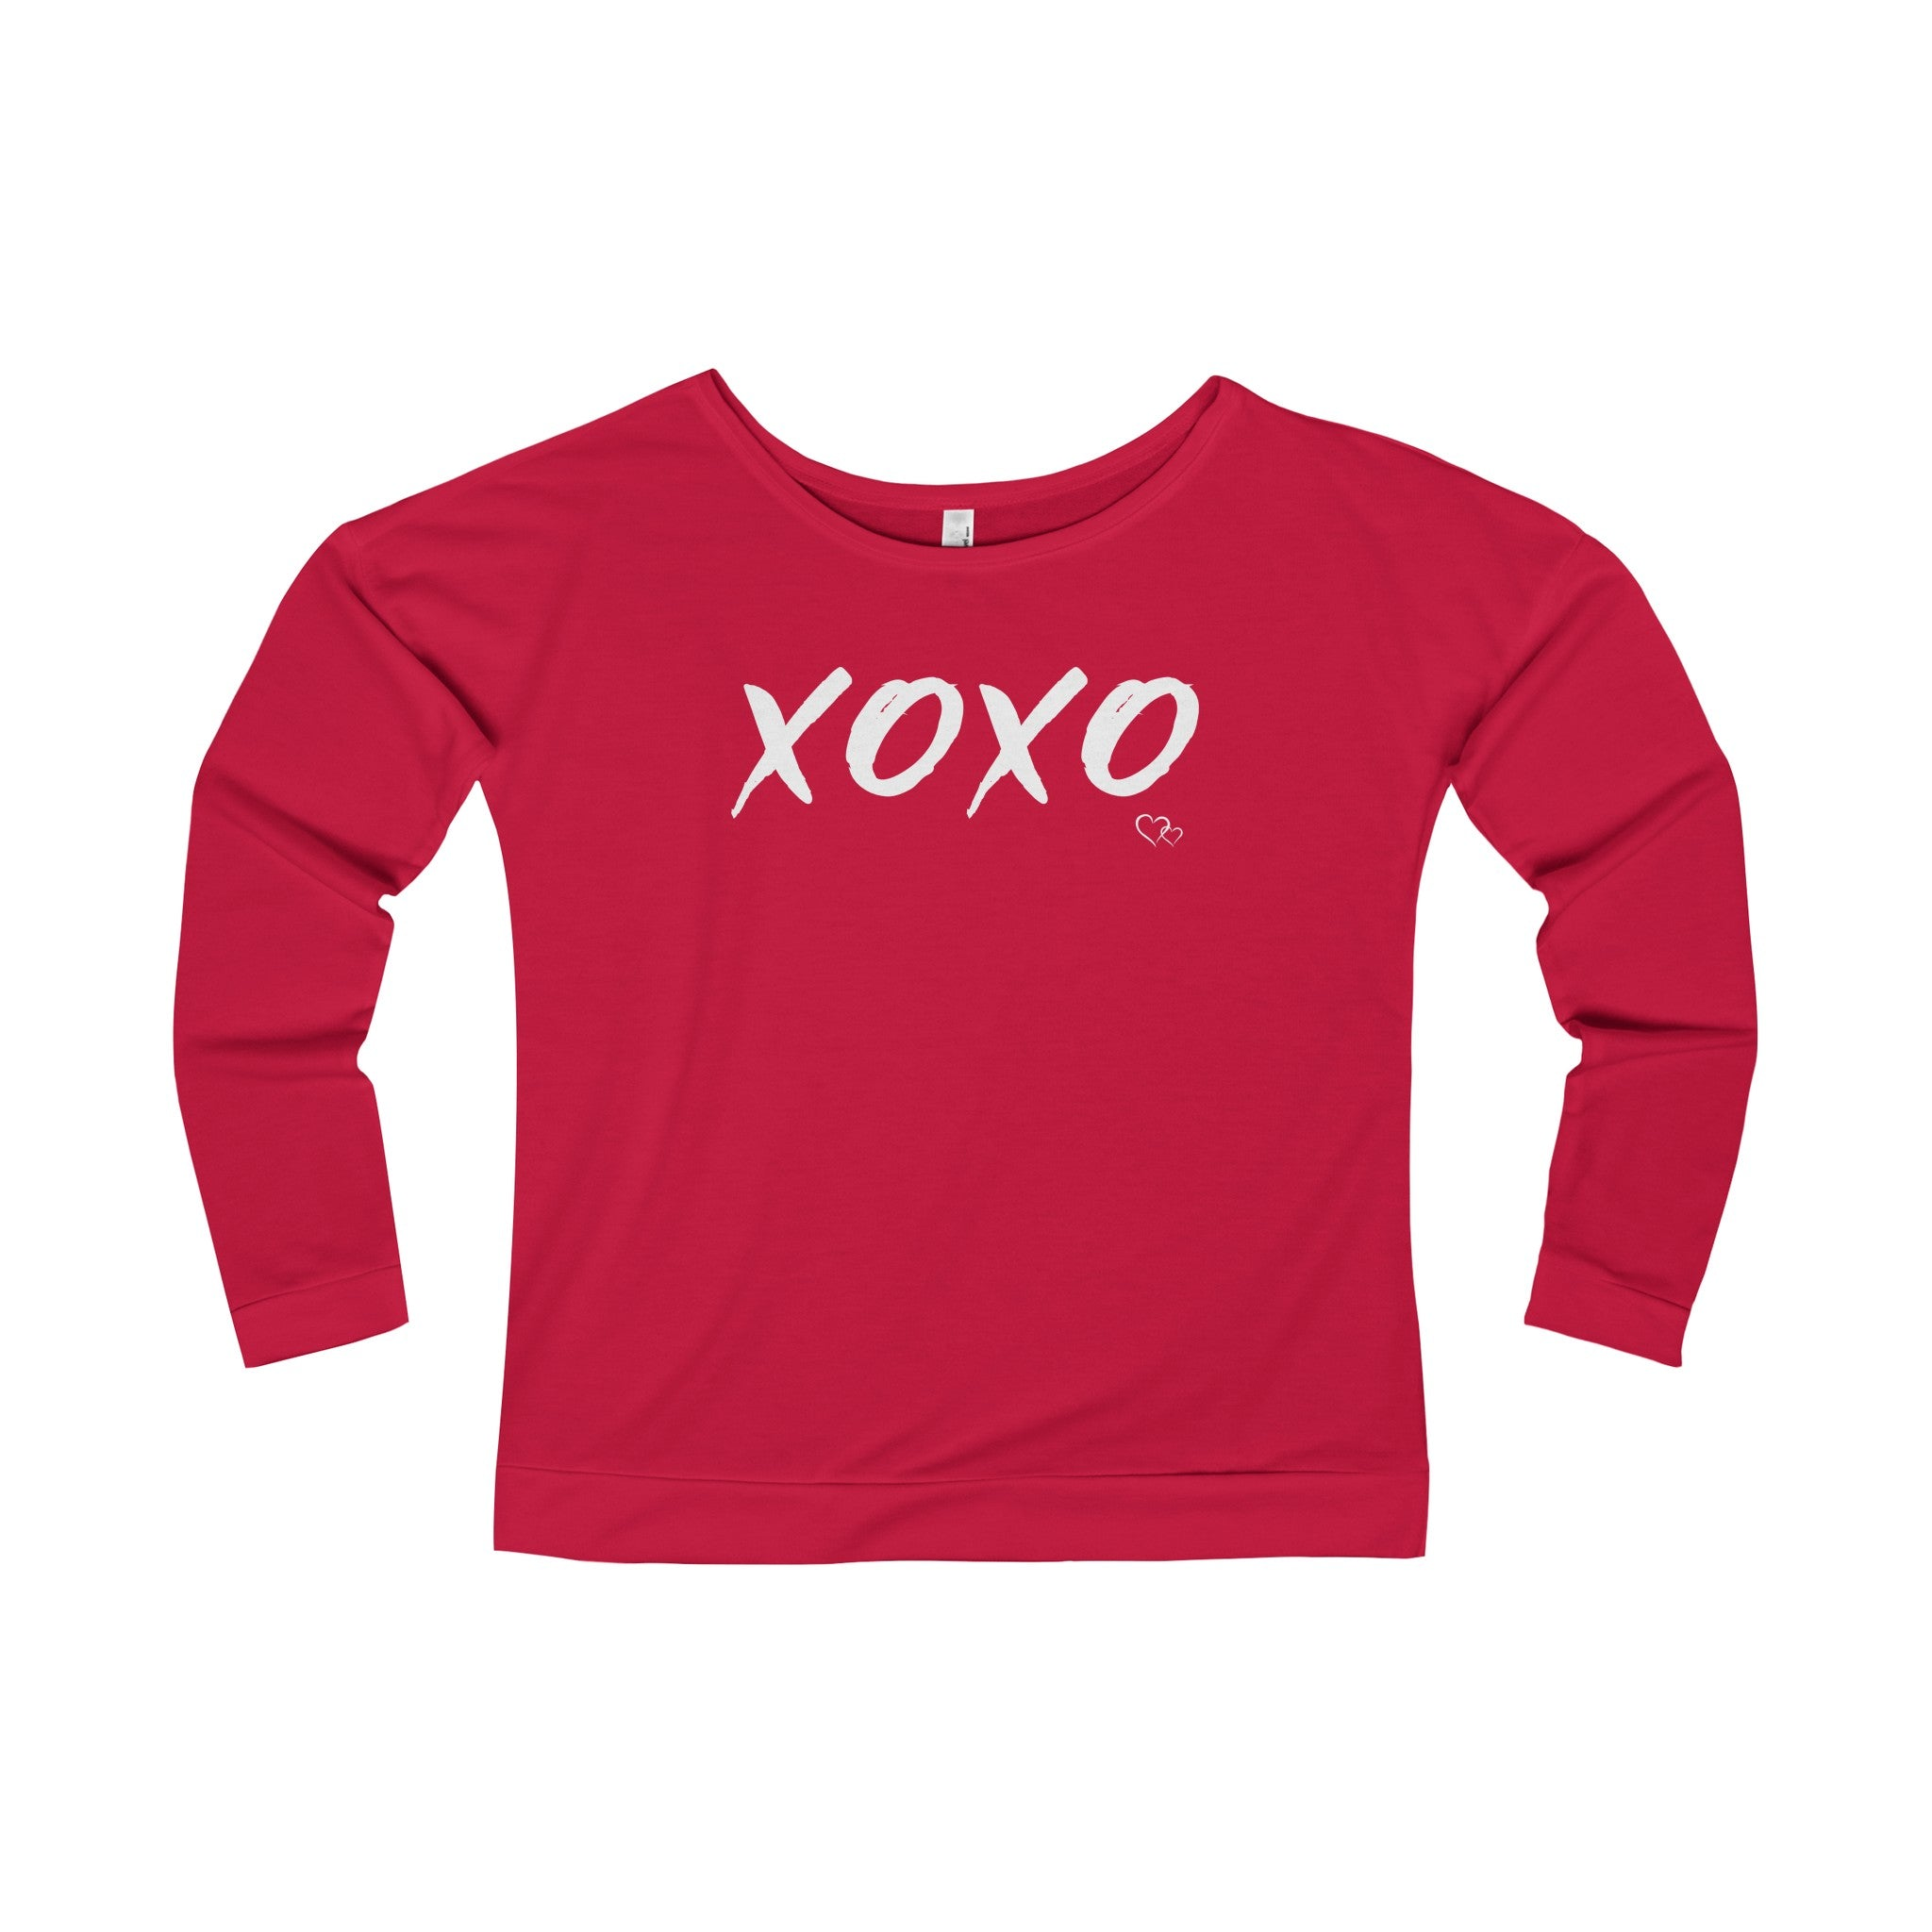 XOXO - Long Sleeve Scoop Terry T